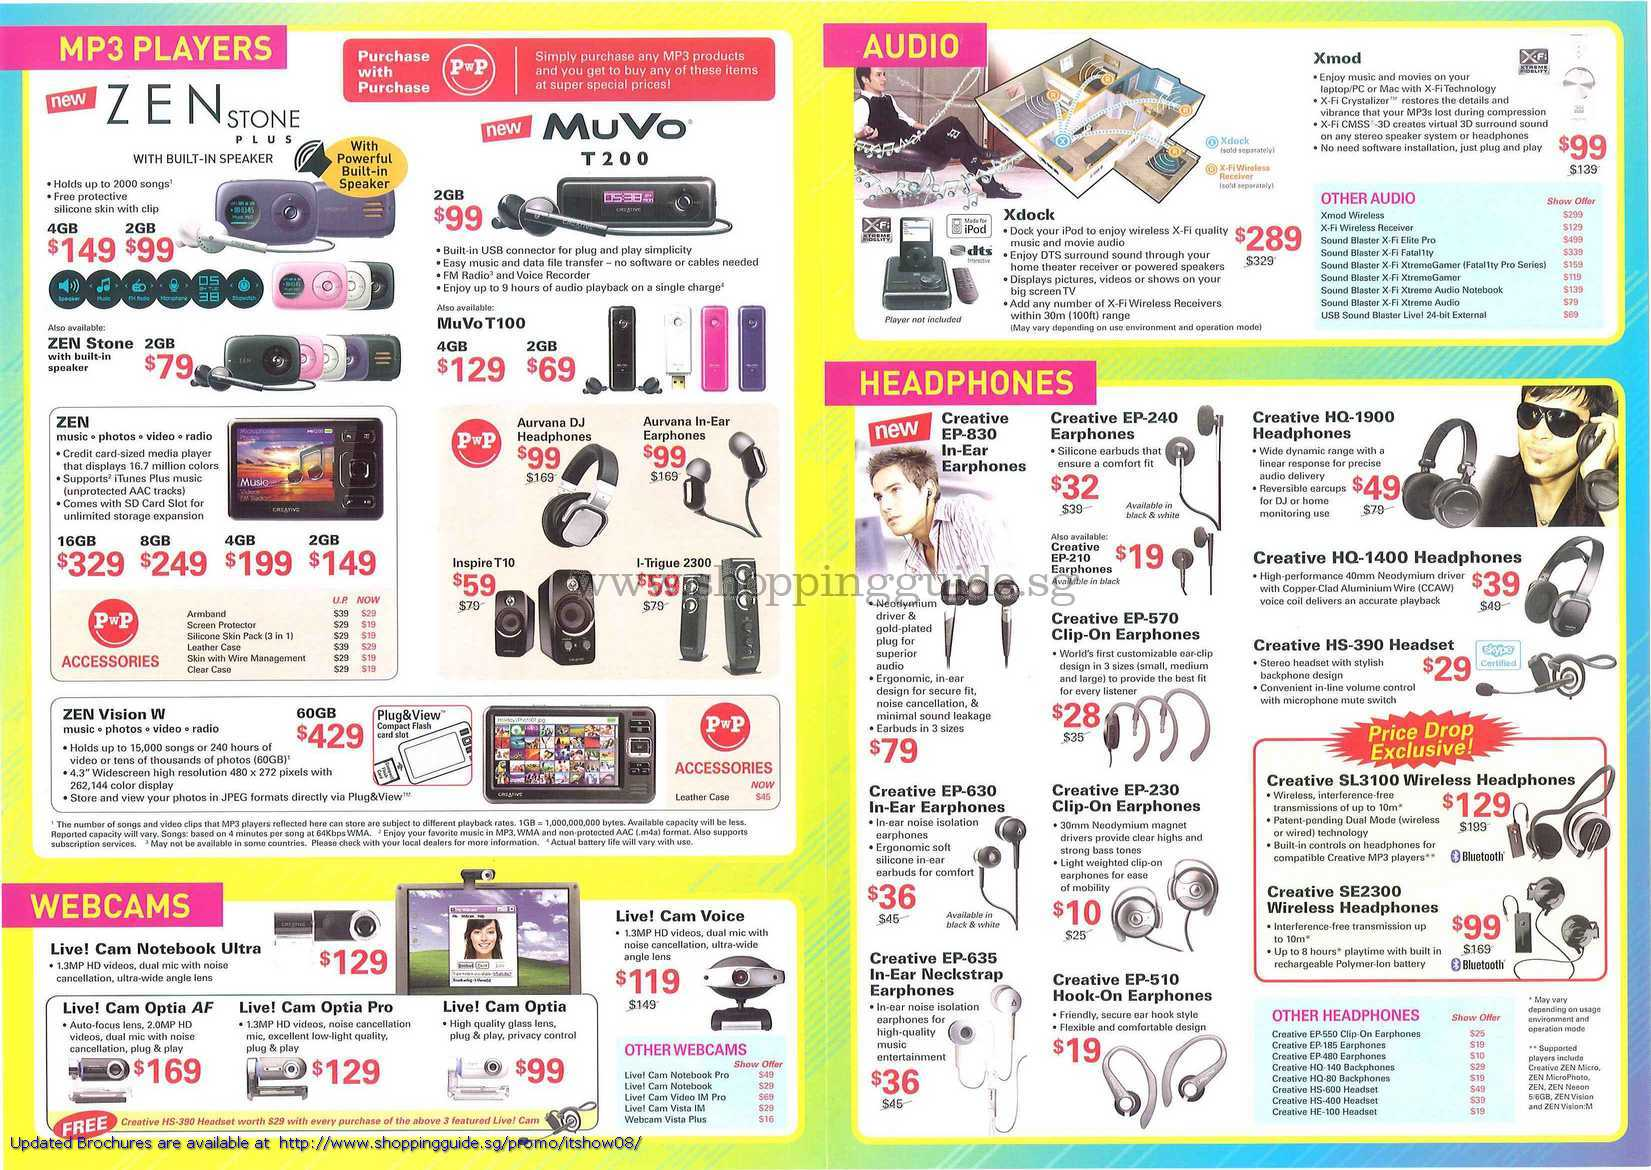 IT Show 2008 price list image brochure of Creative Mp3 Zen Stone Muvo Vision Live Cam Optia Xmod Xdock Earphones Headphones